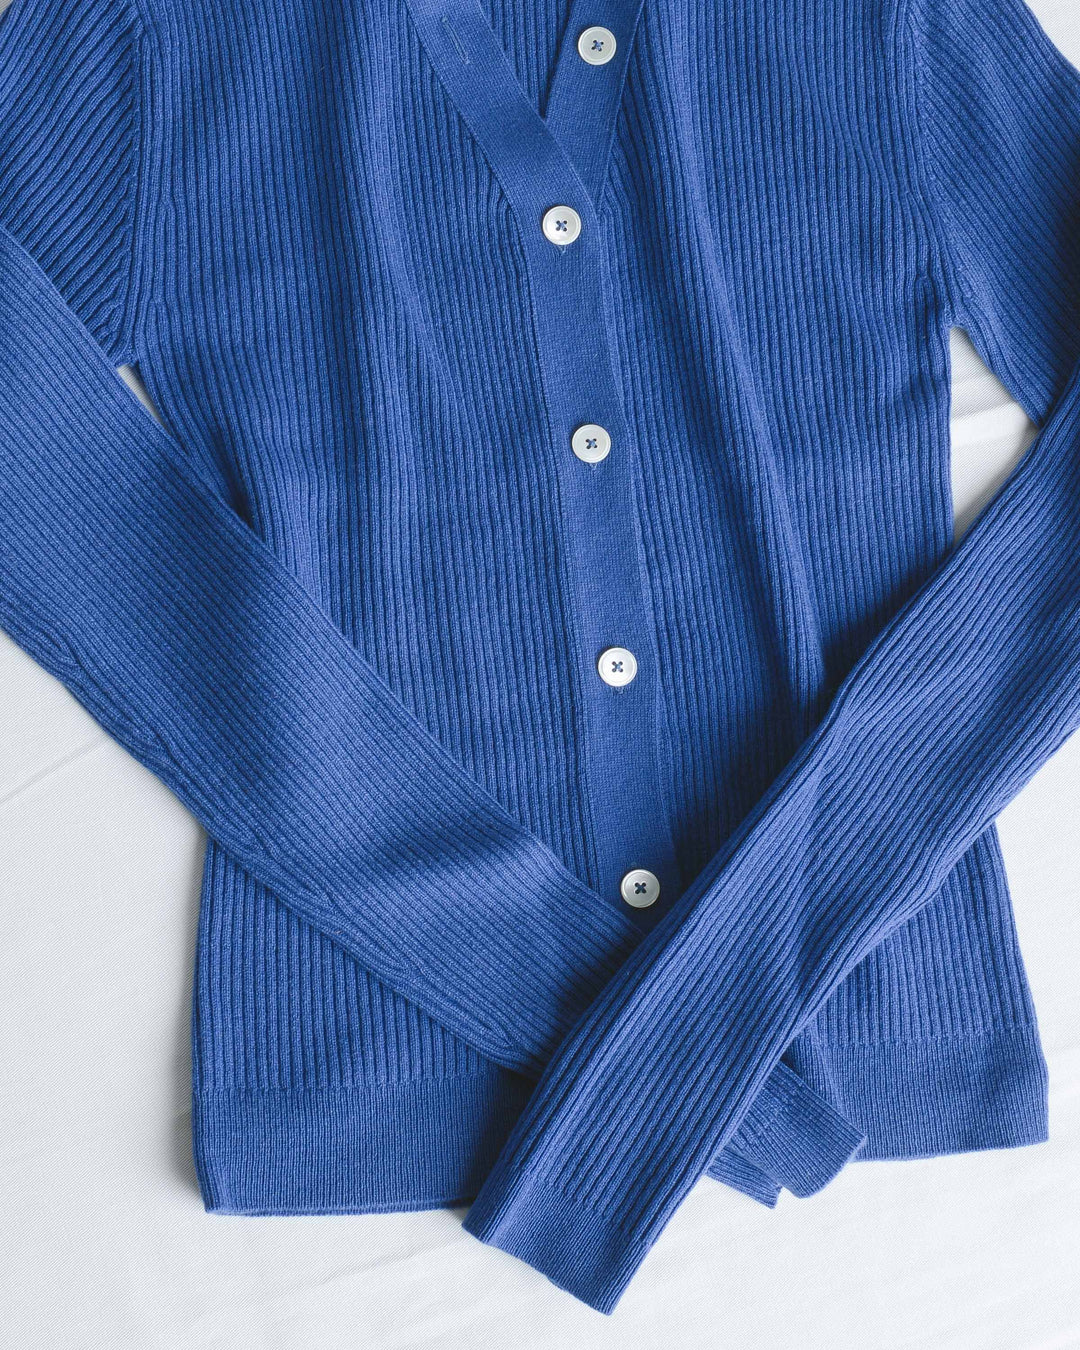 Serge Blue Veronique V-Neck Cardigan